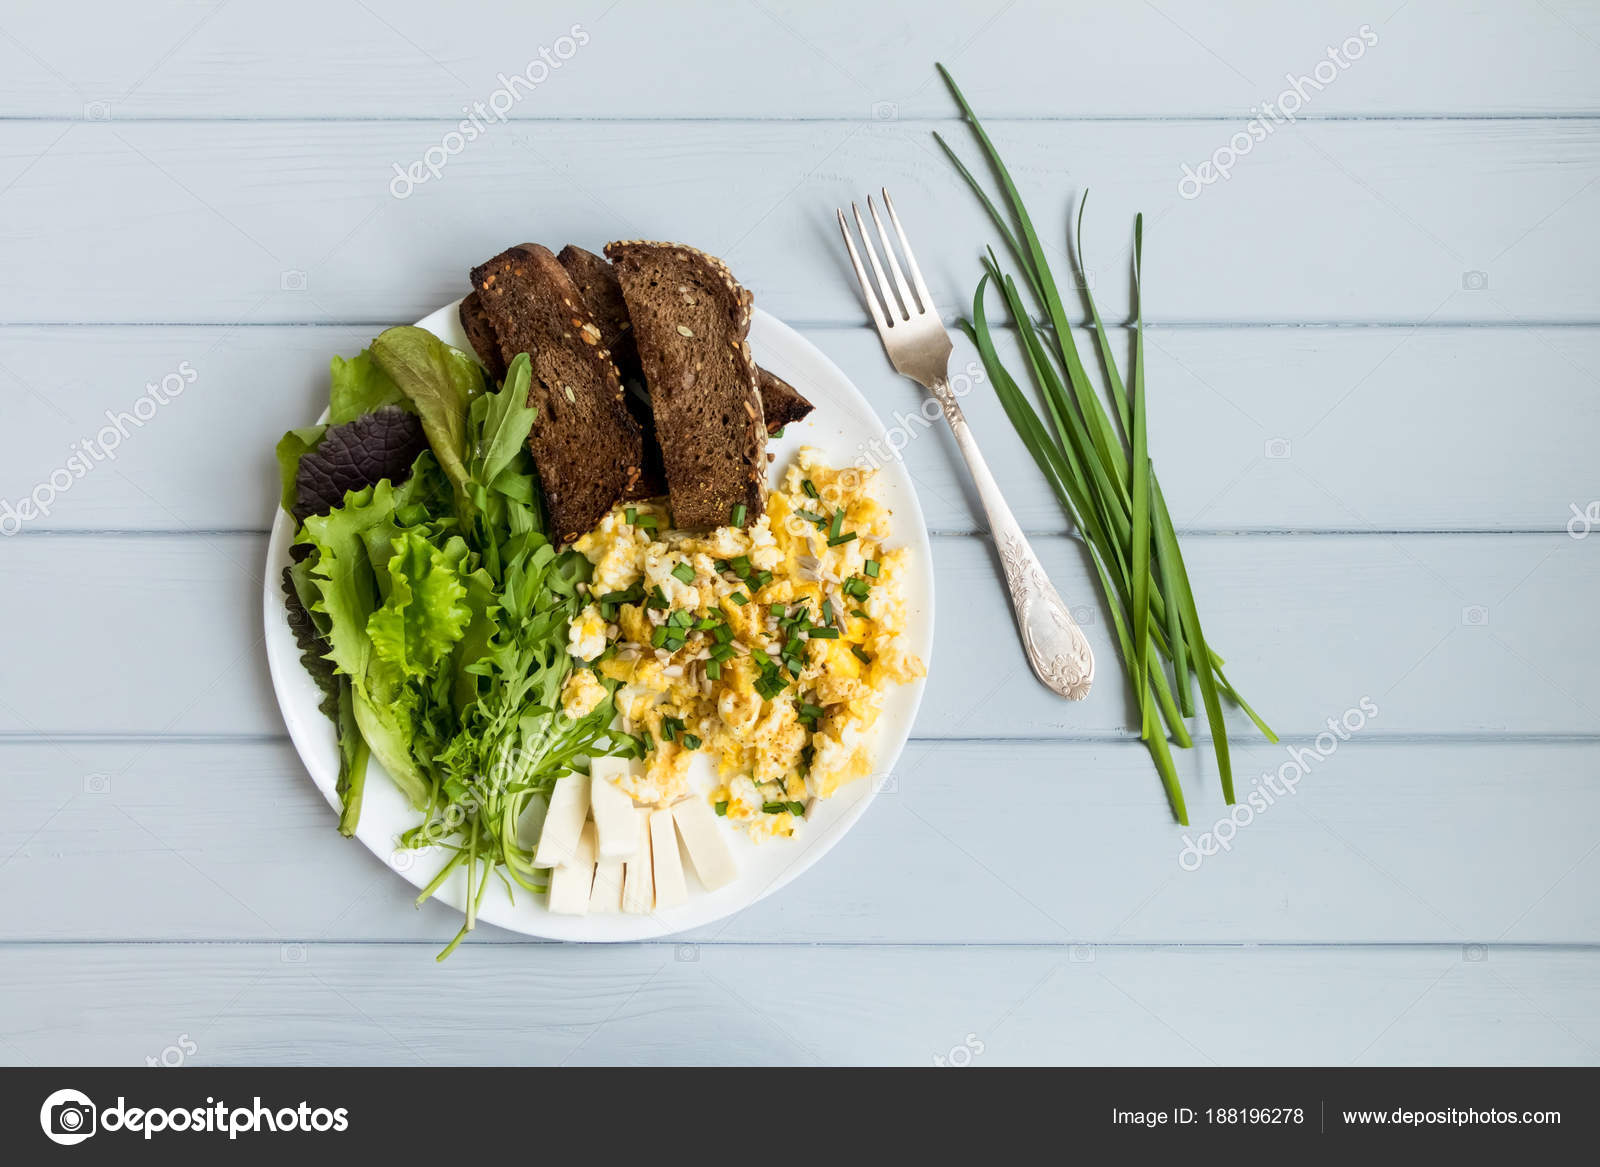 Healthy Breakfast Whole Wheat Toasted Bread Scrambled Eggs Salads Flat Lay On